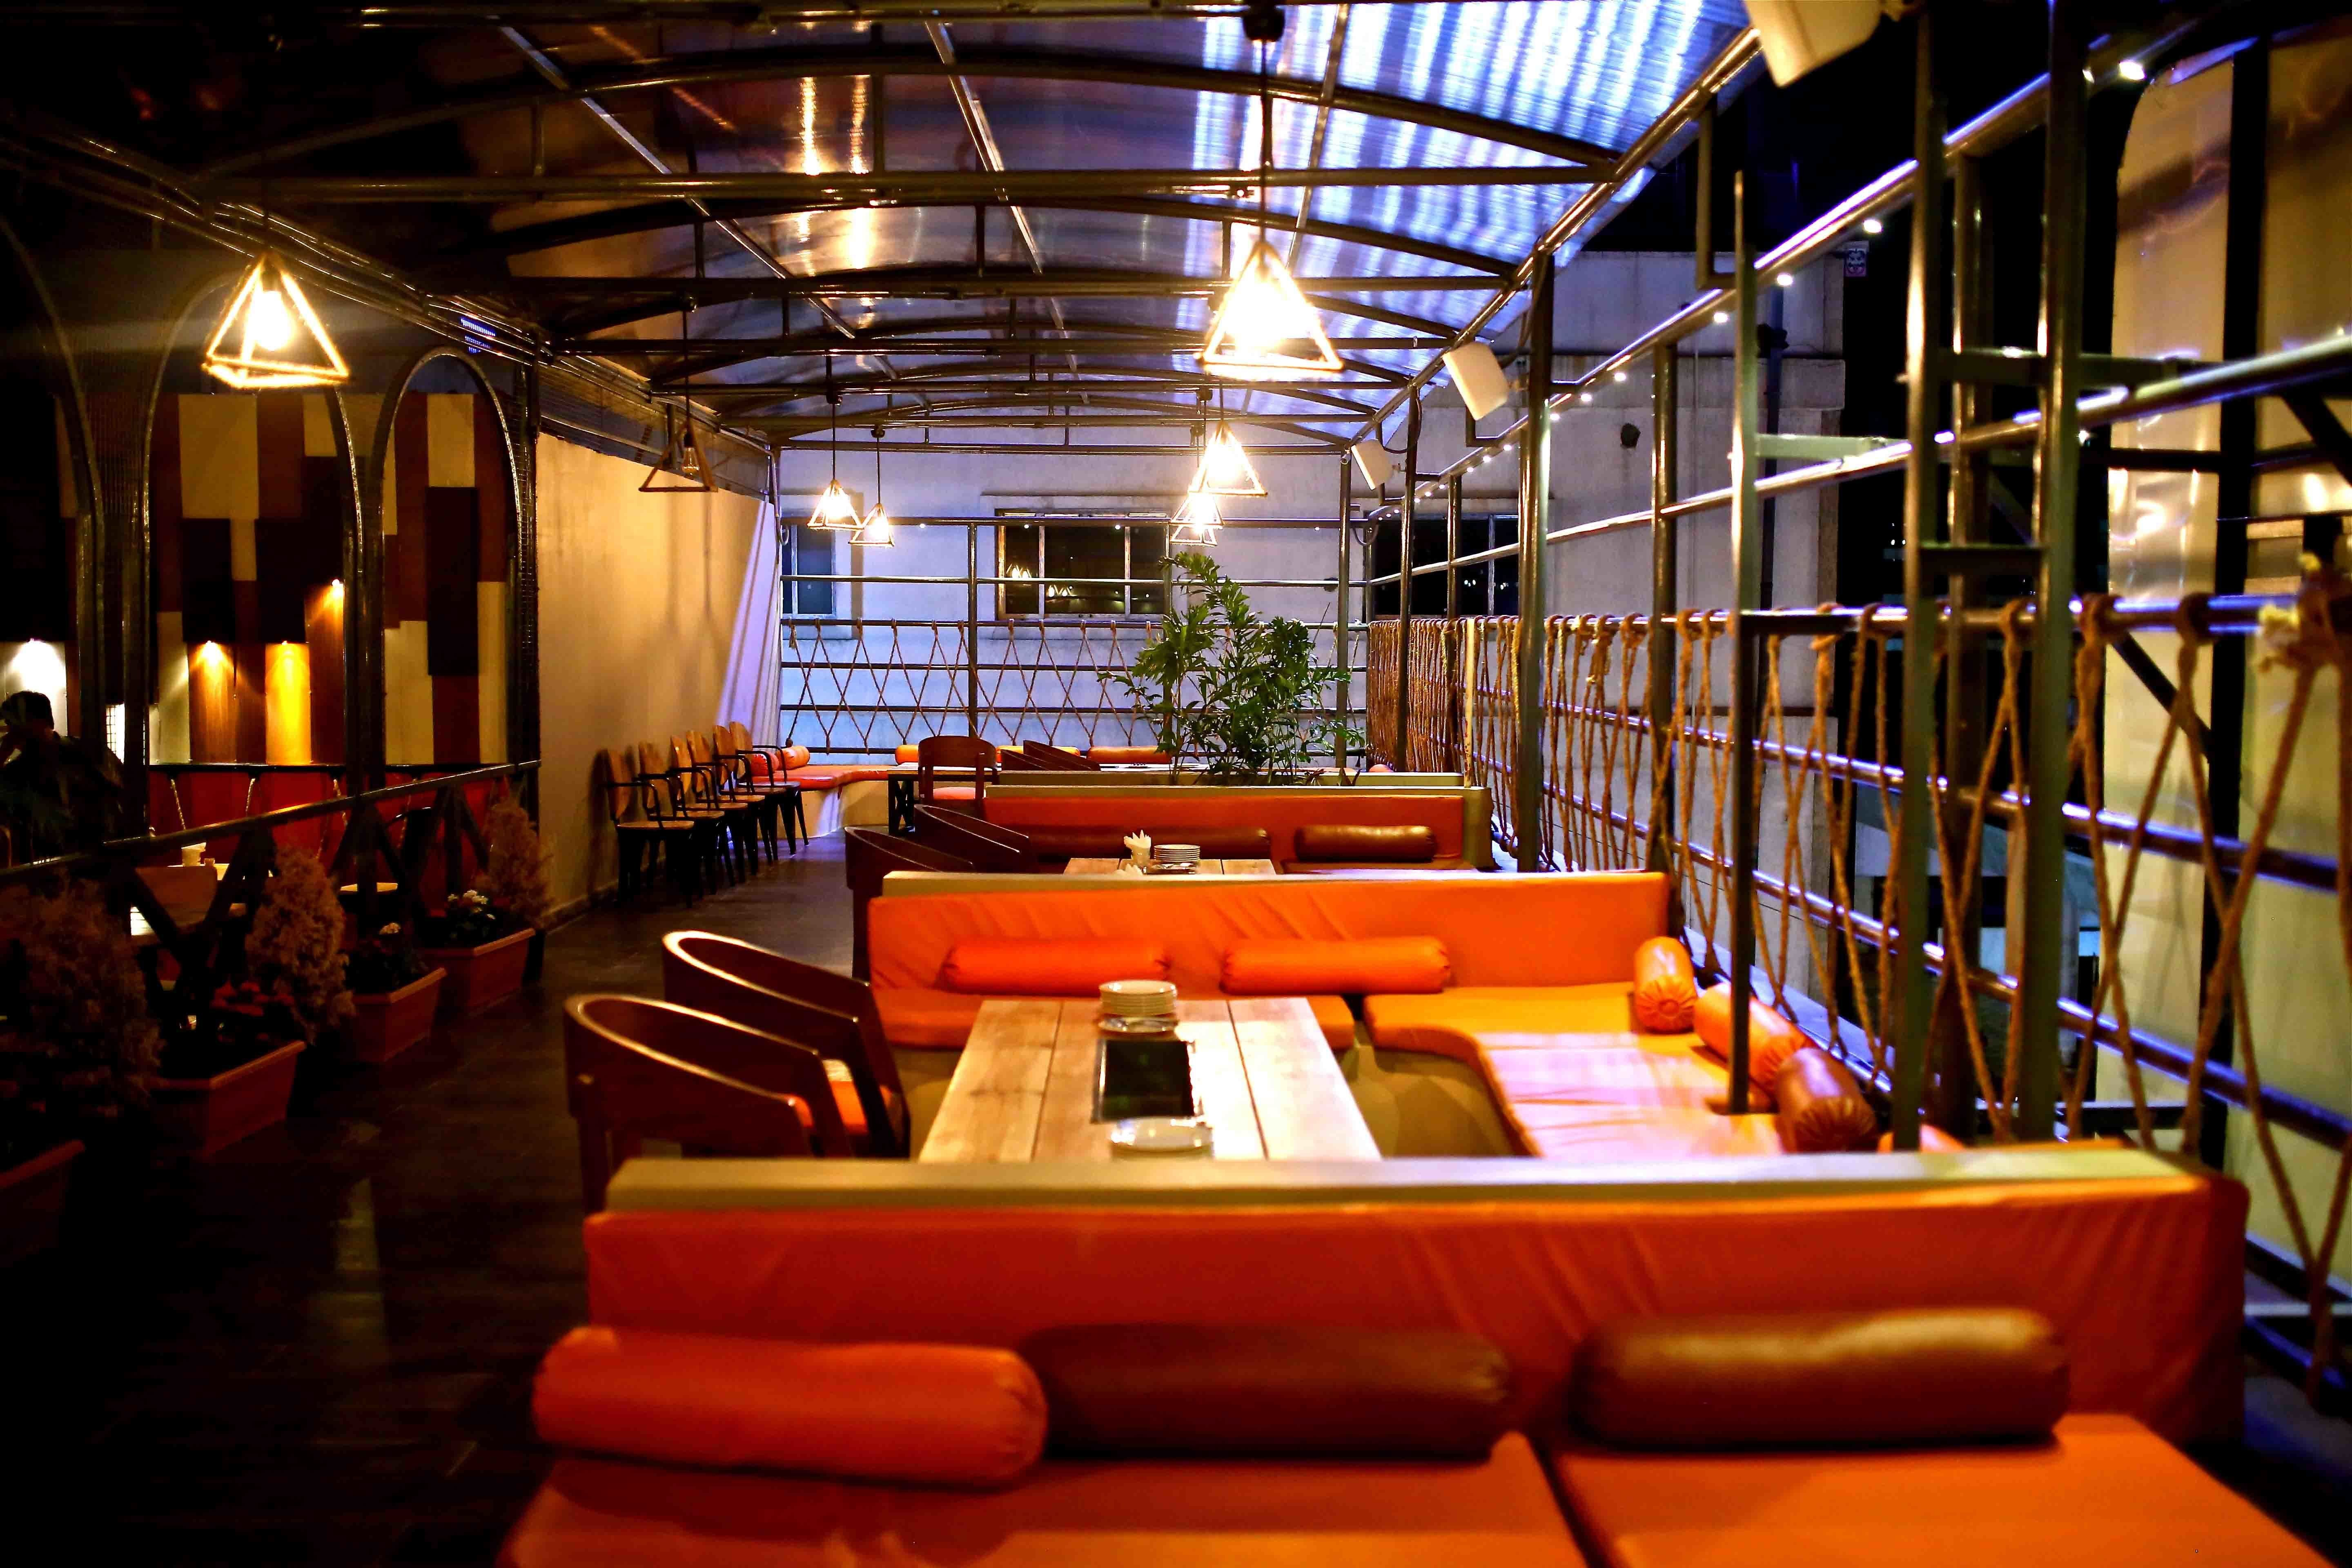 OTB - Cafe Out Of The Box, Jubilee Hills, Hyderabad - Restaurant